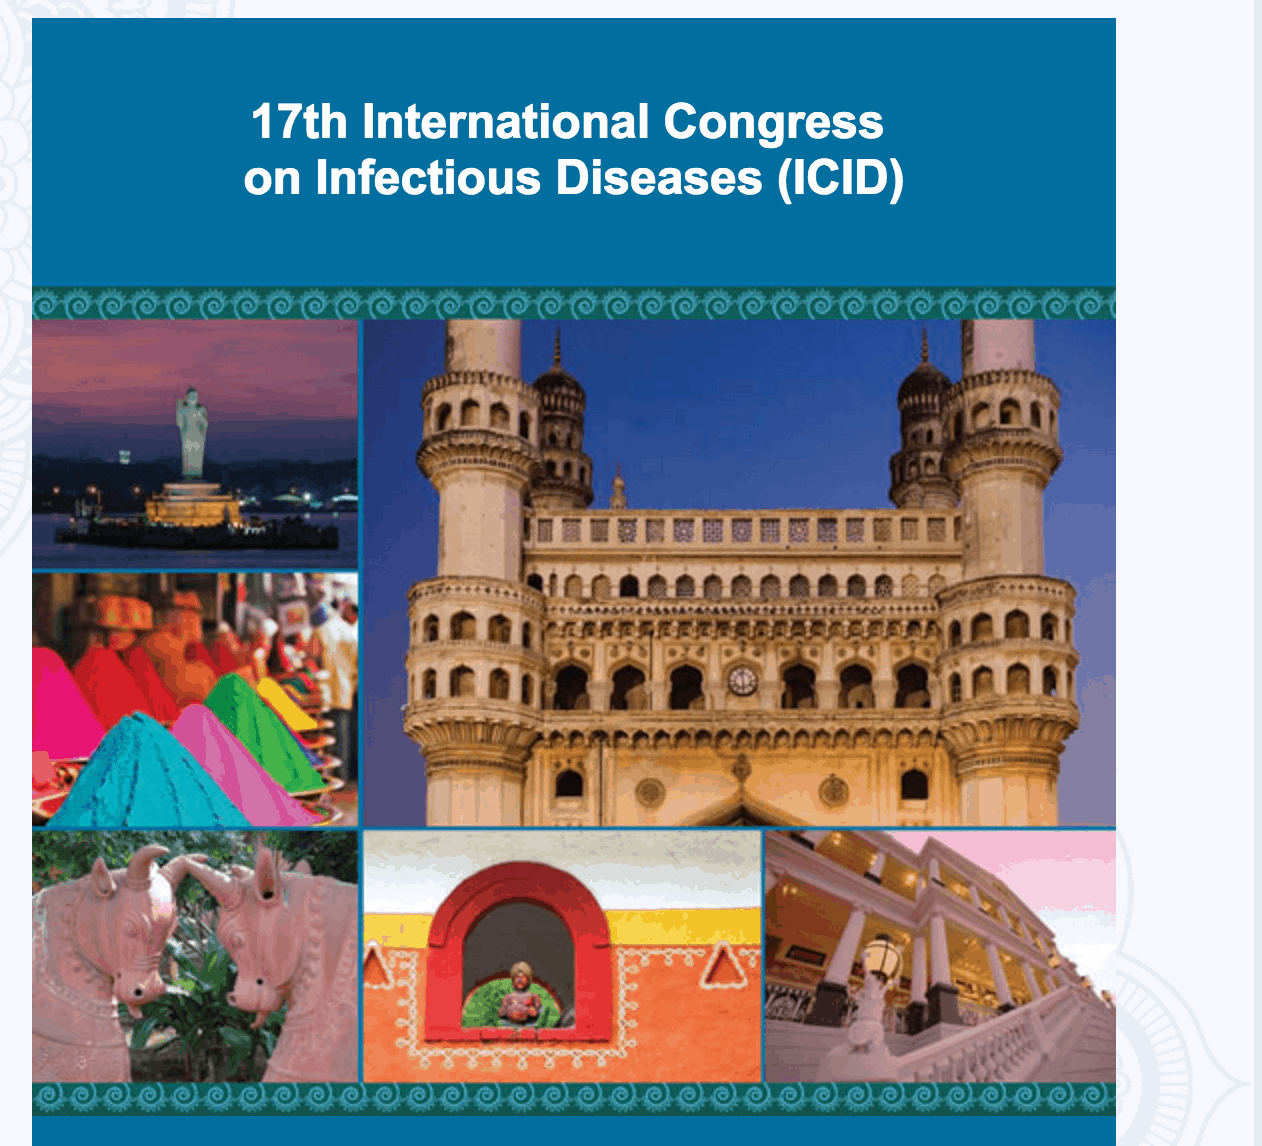 GARP takes the stage at the International Congress on Infectious Diseases